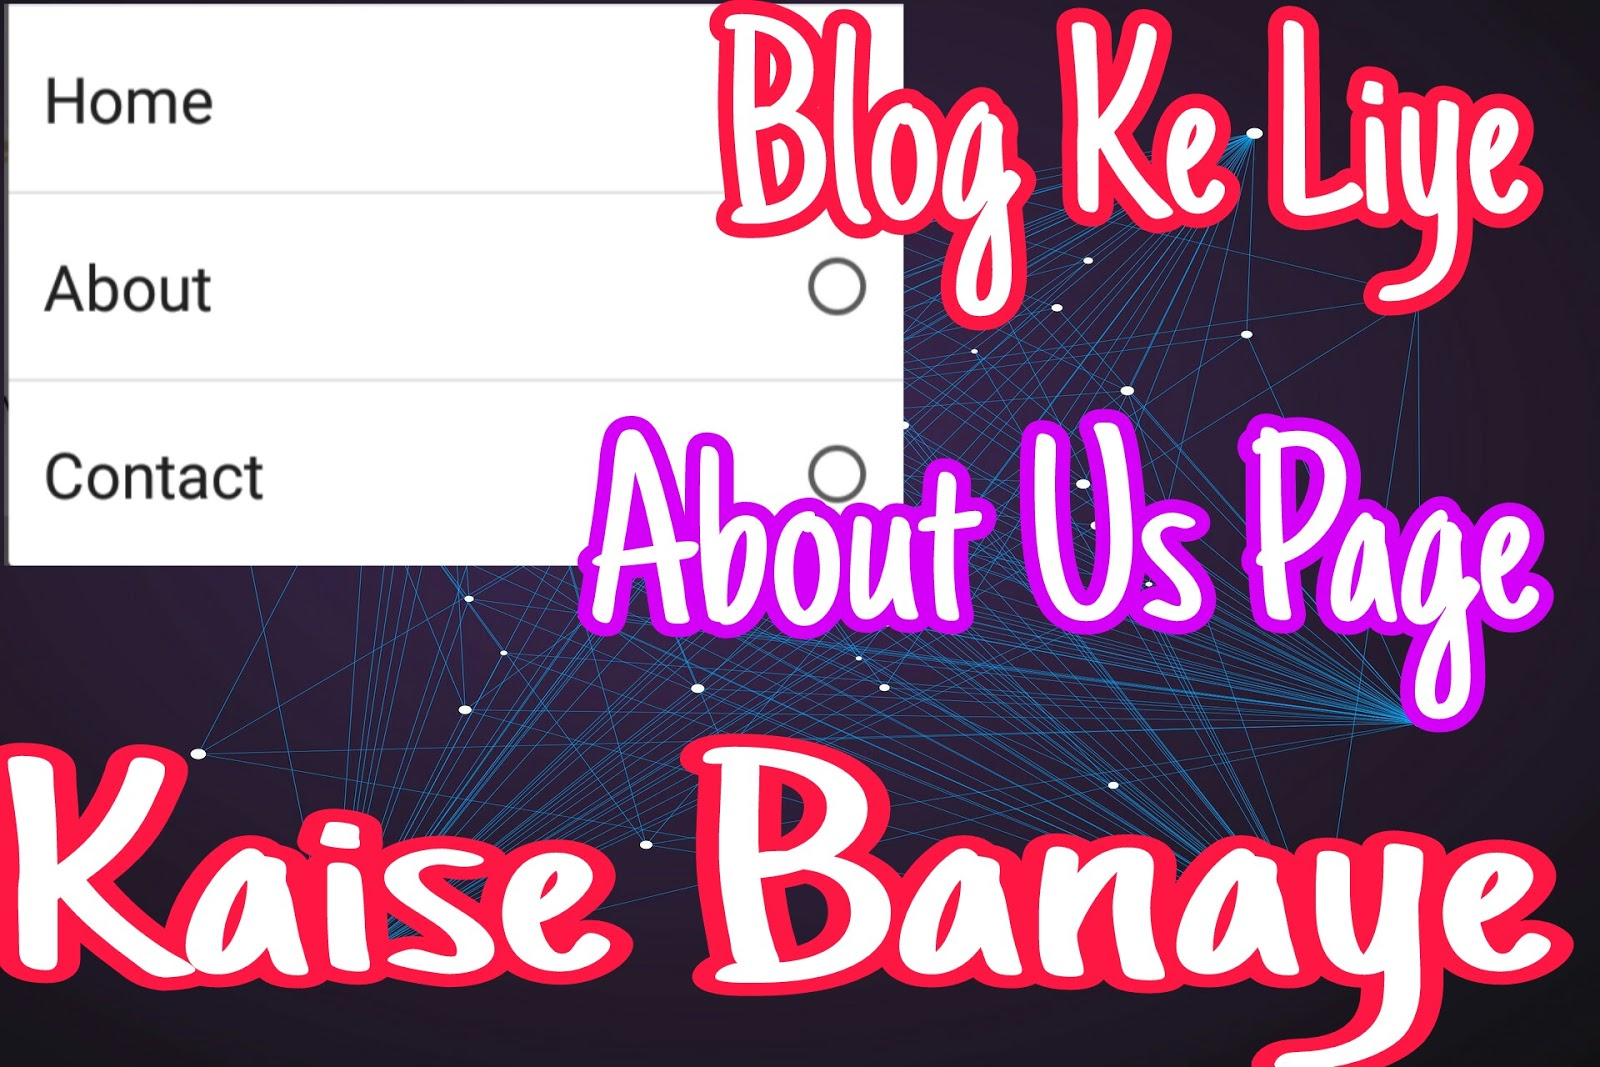 Blog Me About us page kaise banaye our publish kare